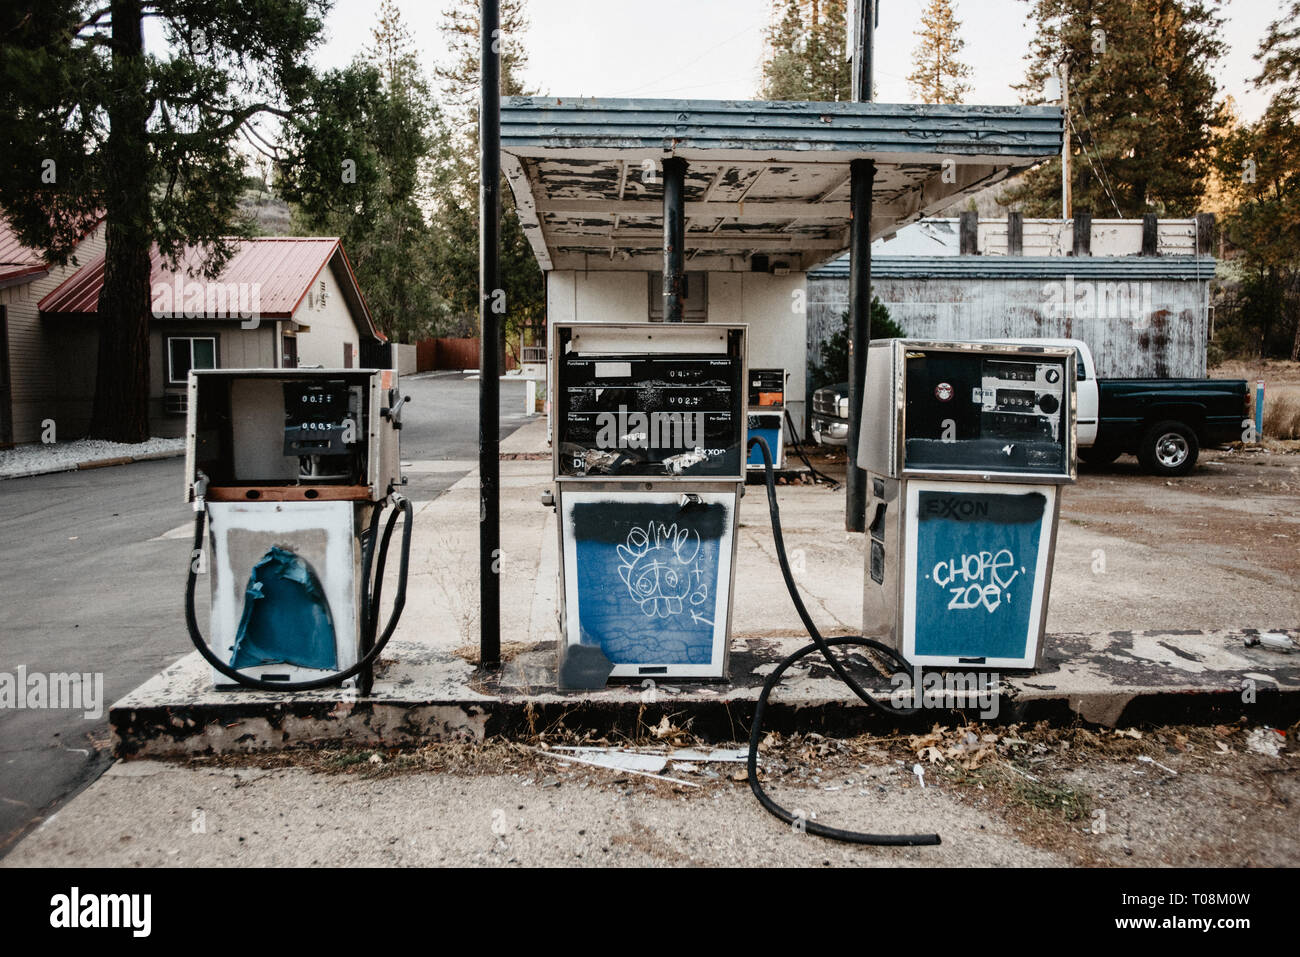 Abandoned Petrol Station High Resolution Stock Photography And Images Alamy